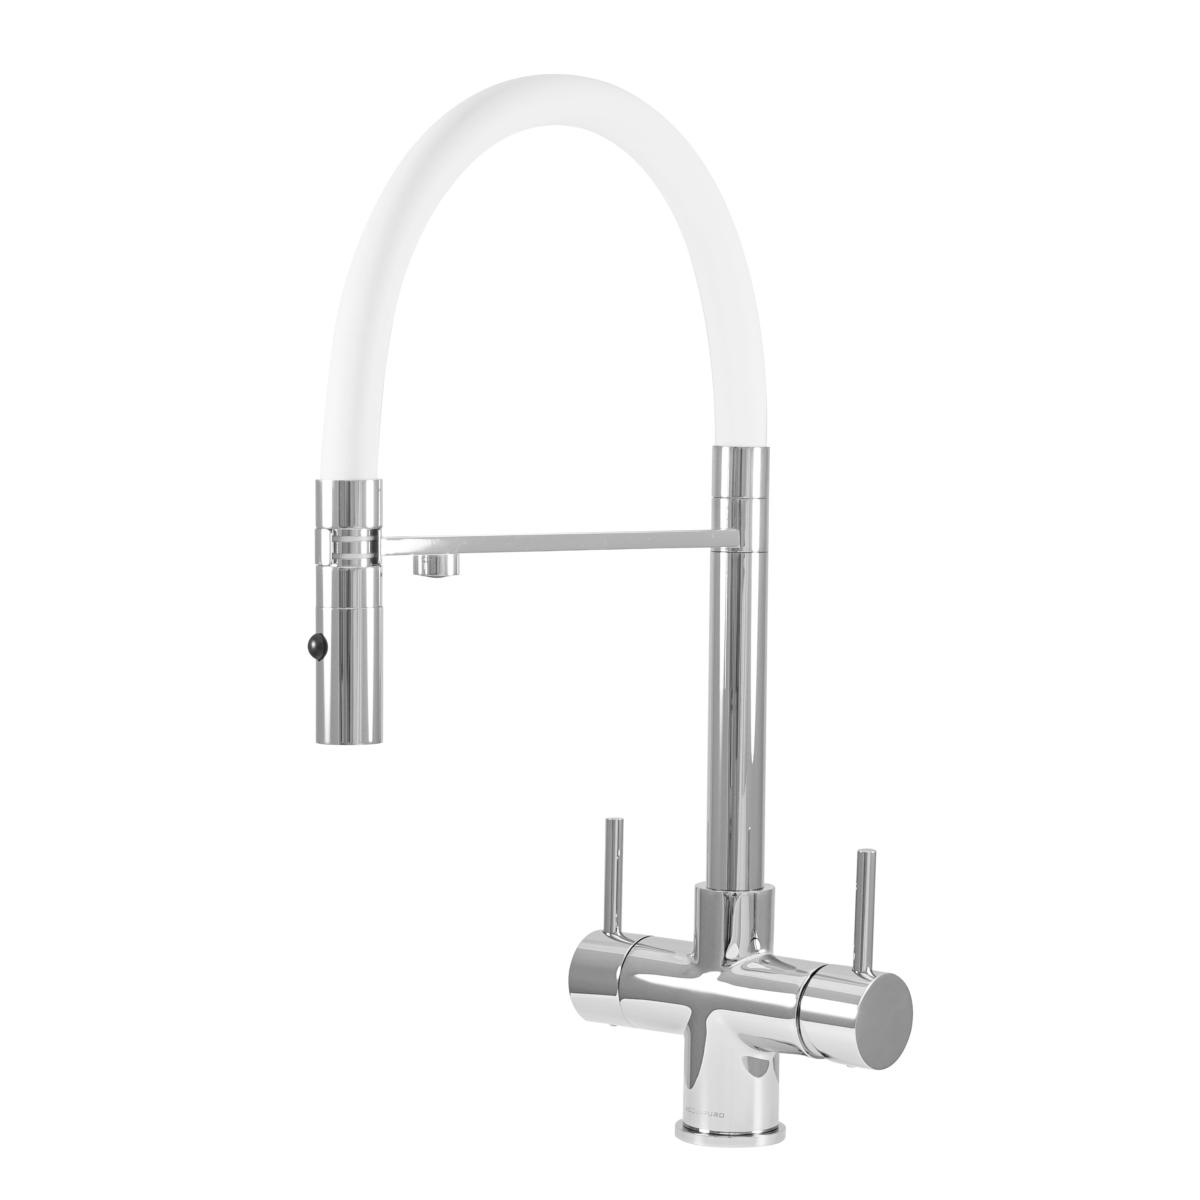 Acquapuro Aquila 3-Way 2 Lever Spray Filter Tap White/Chrome